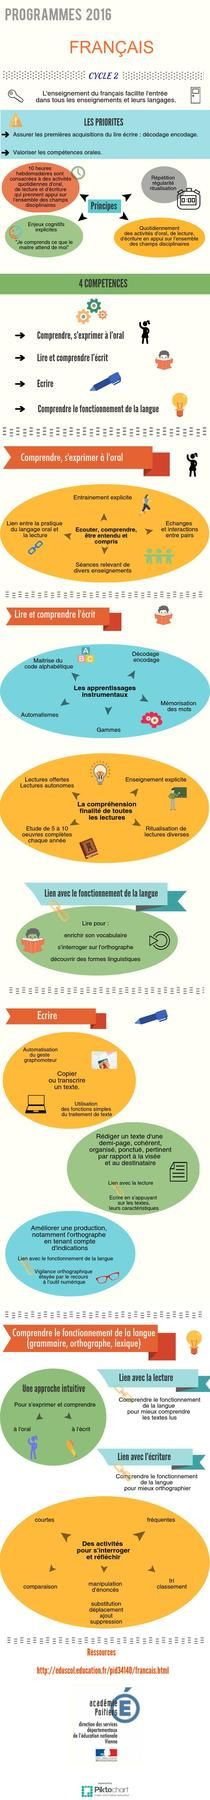 Français Cycle 2  | Piktochart Infographic Editor